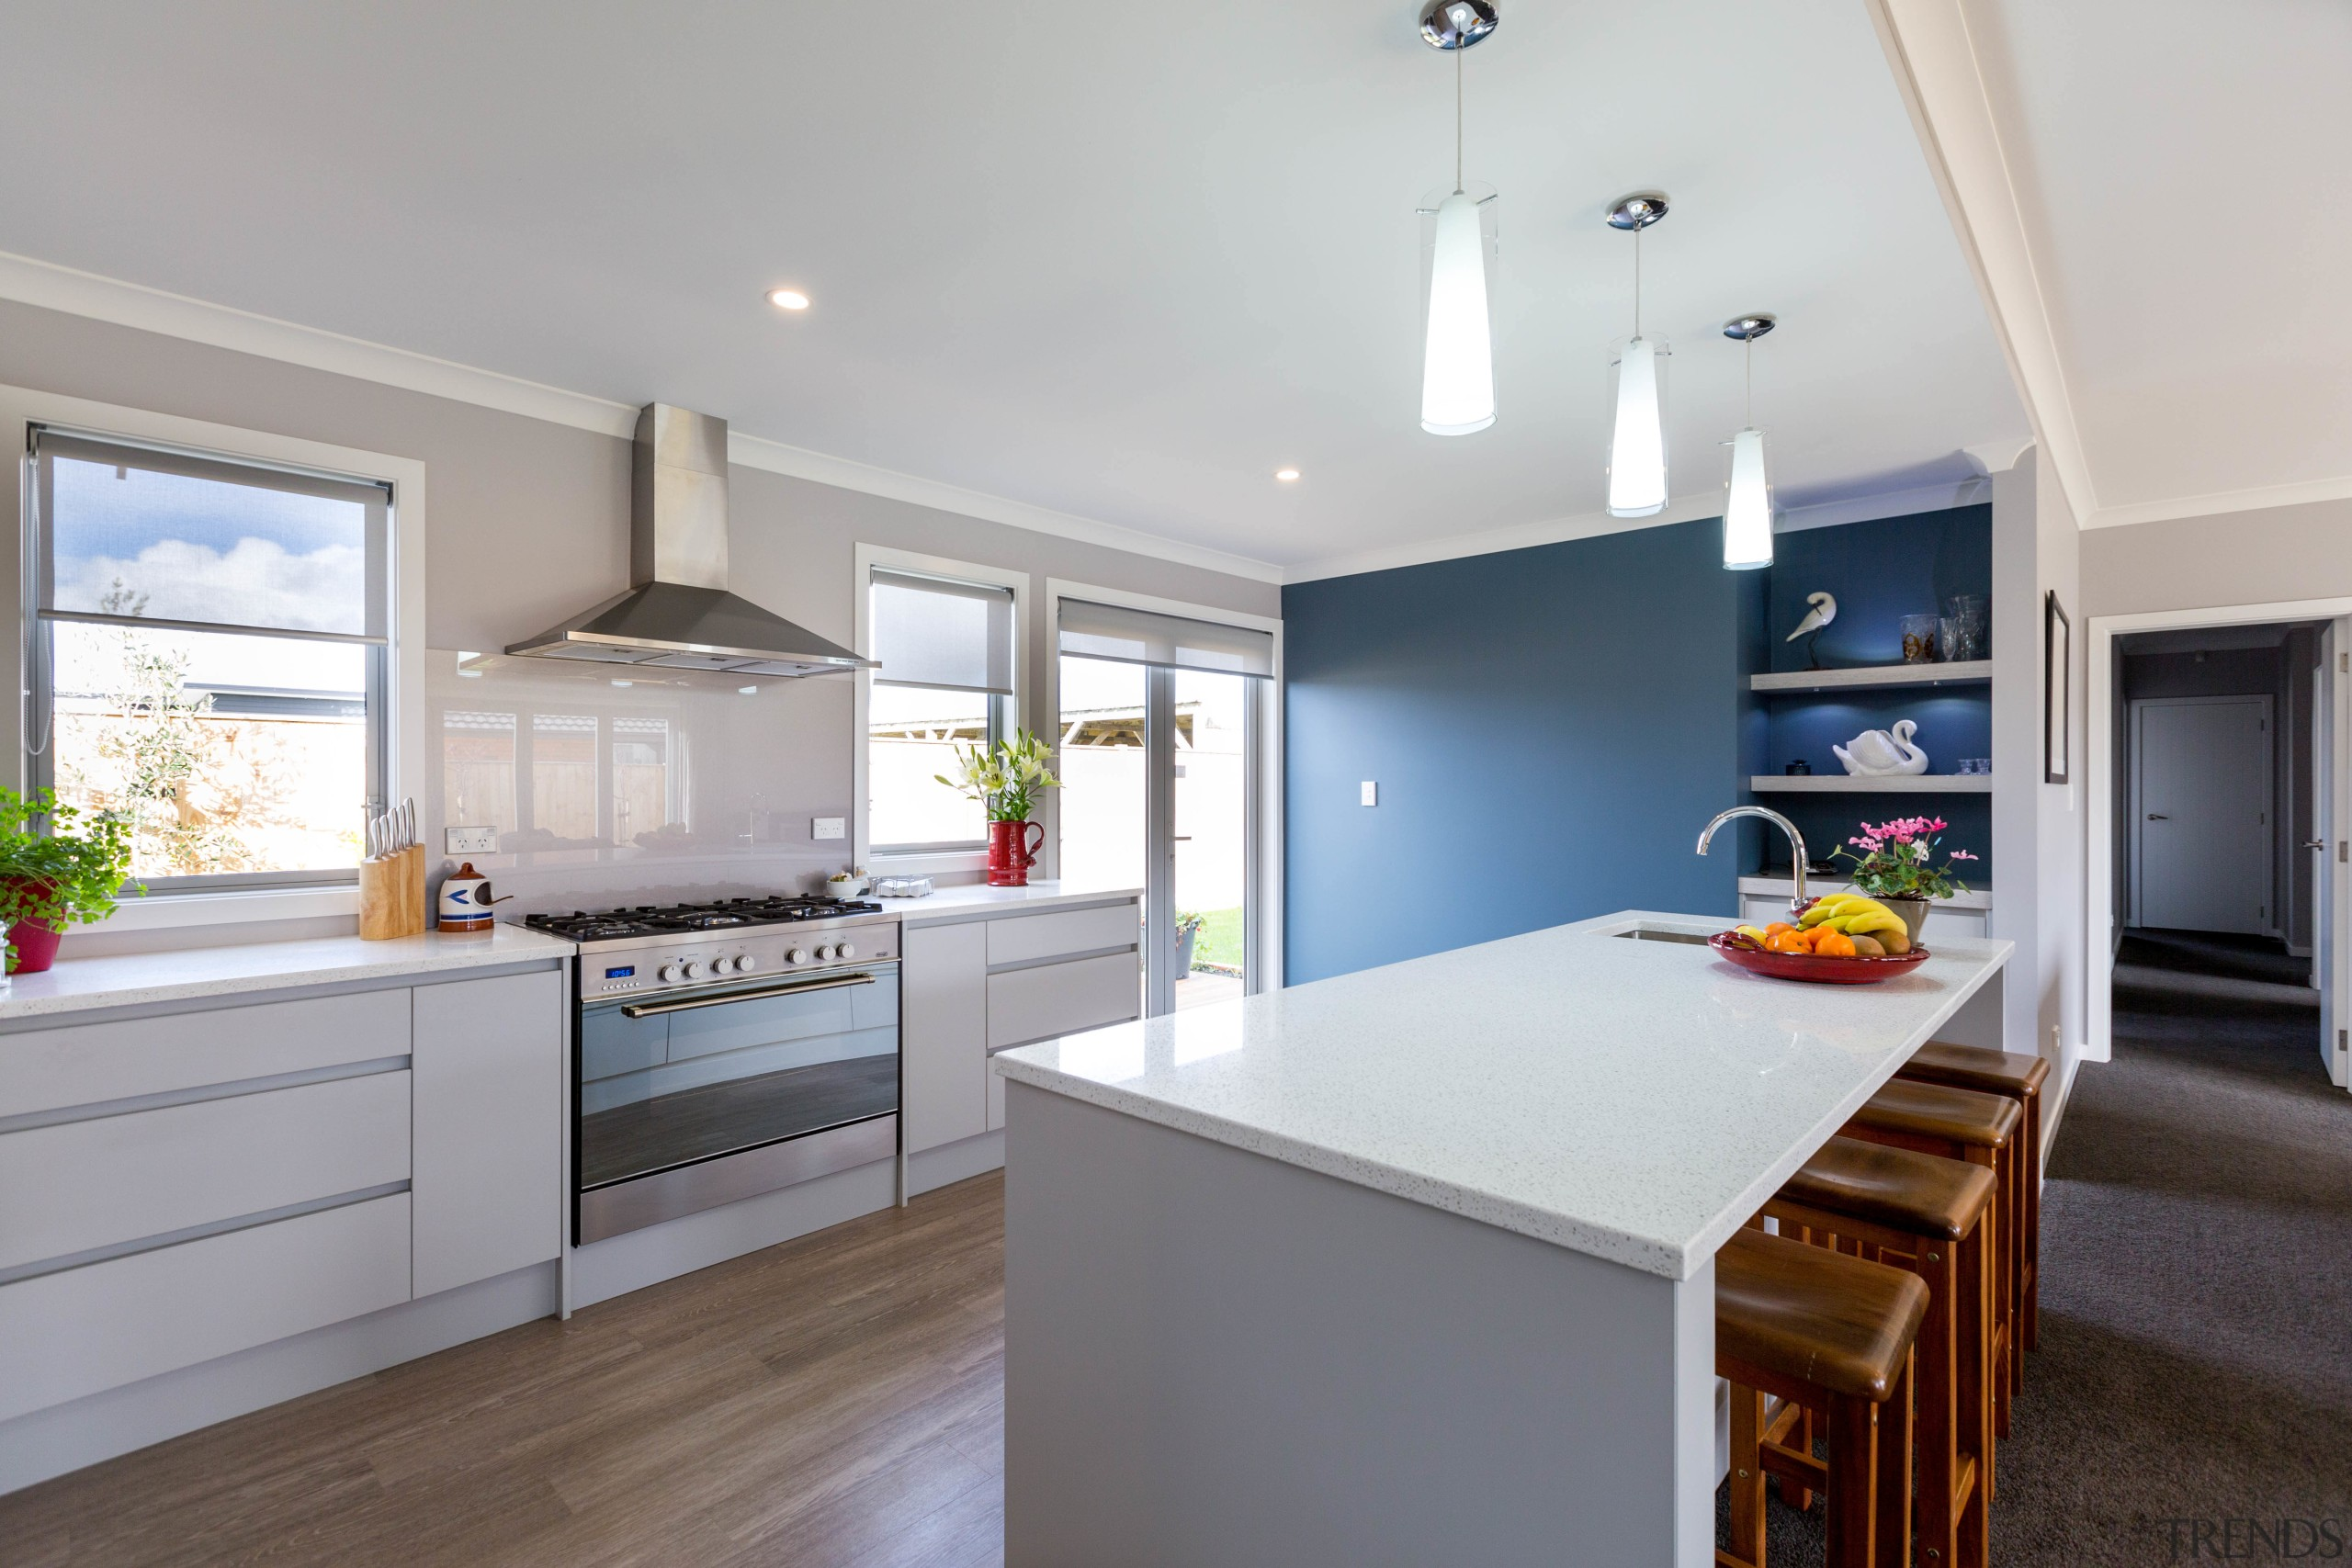 A feature wall in a smoky grey-blue shade countertop, cuisine classique, interior design, kitchen, real estate, room, gray